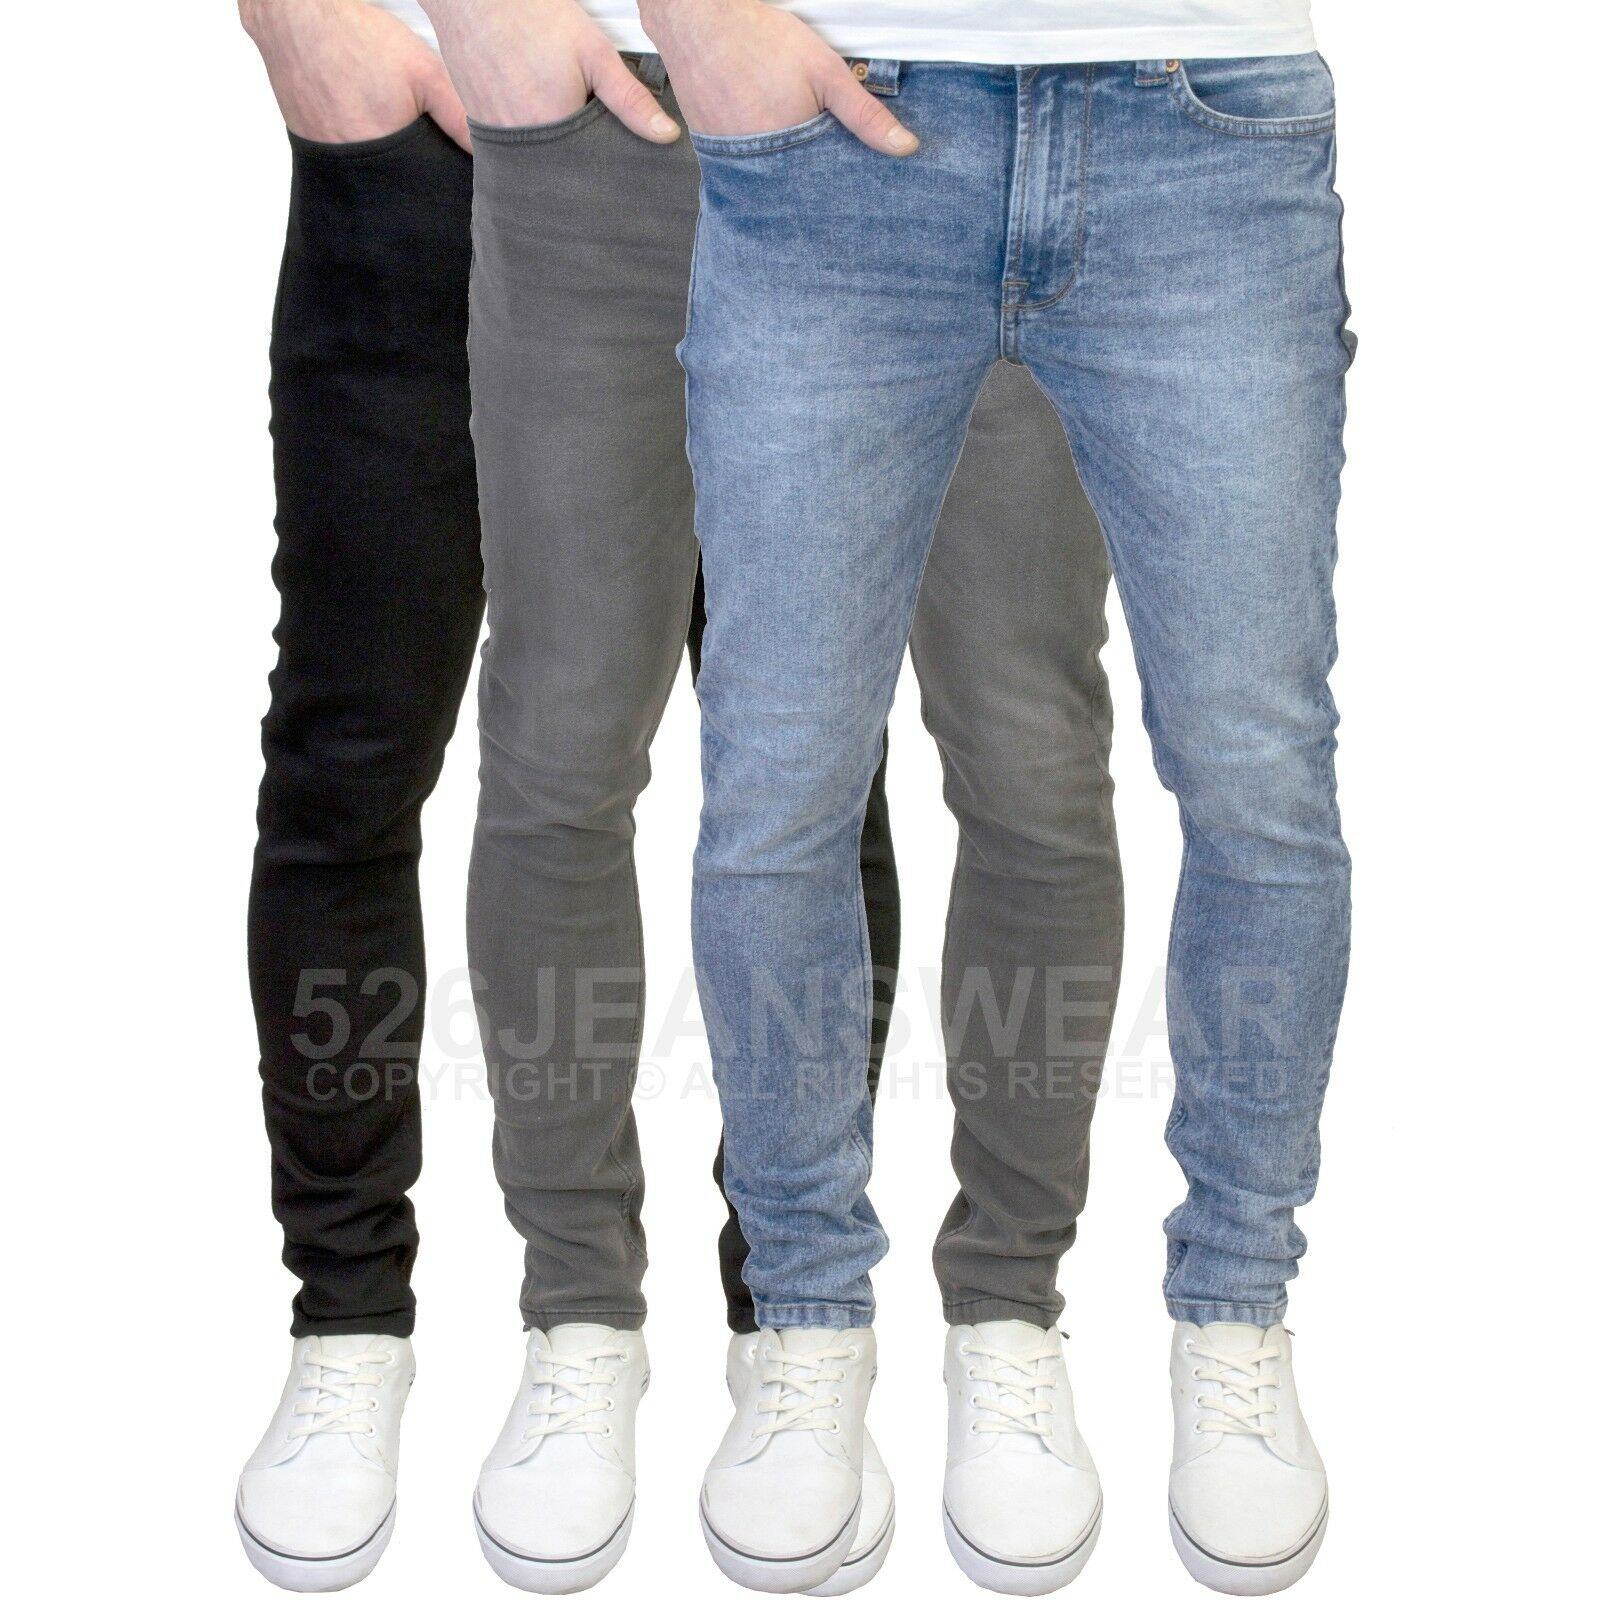 4b9f3853b7e5df Details about Only & Sons Men's Designer Skinny Fit Stretch Jeans, BNWT